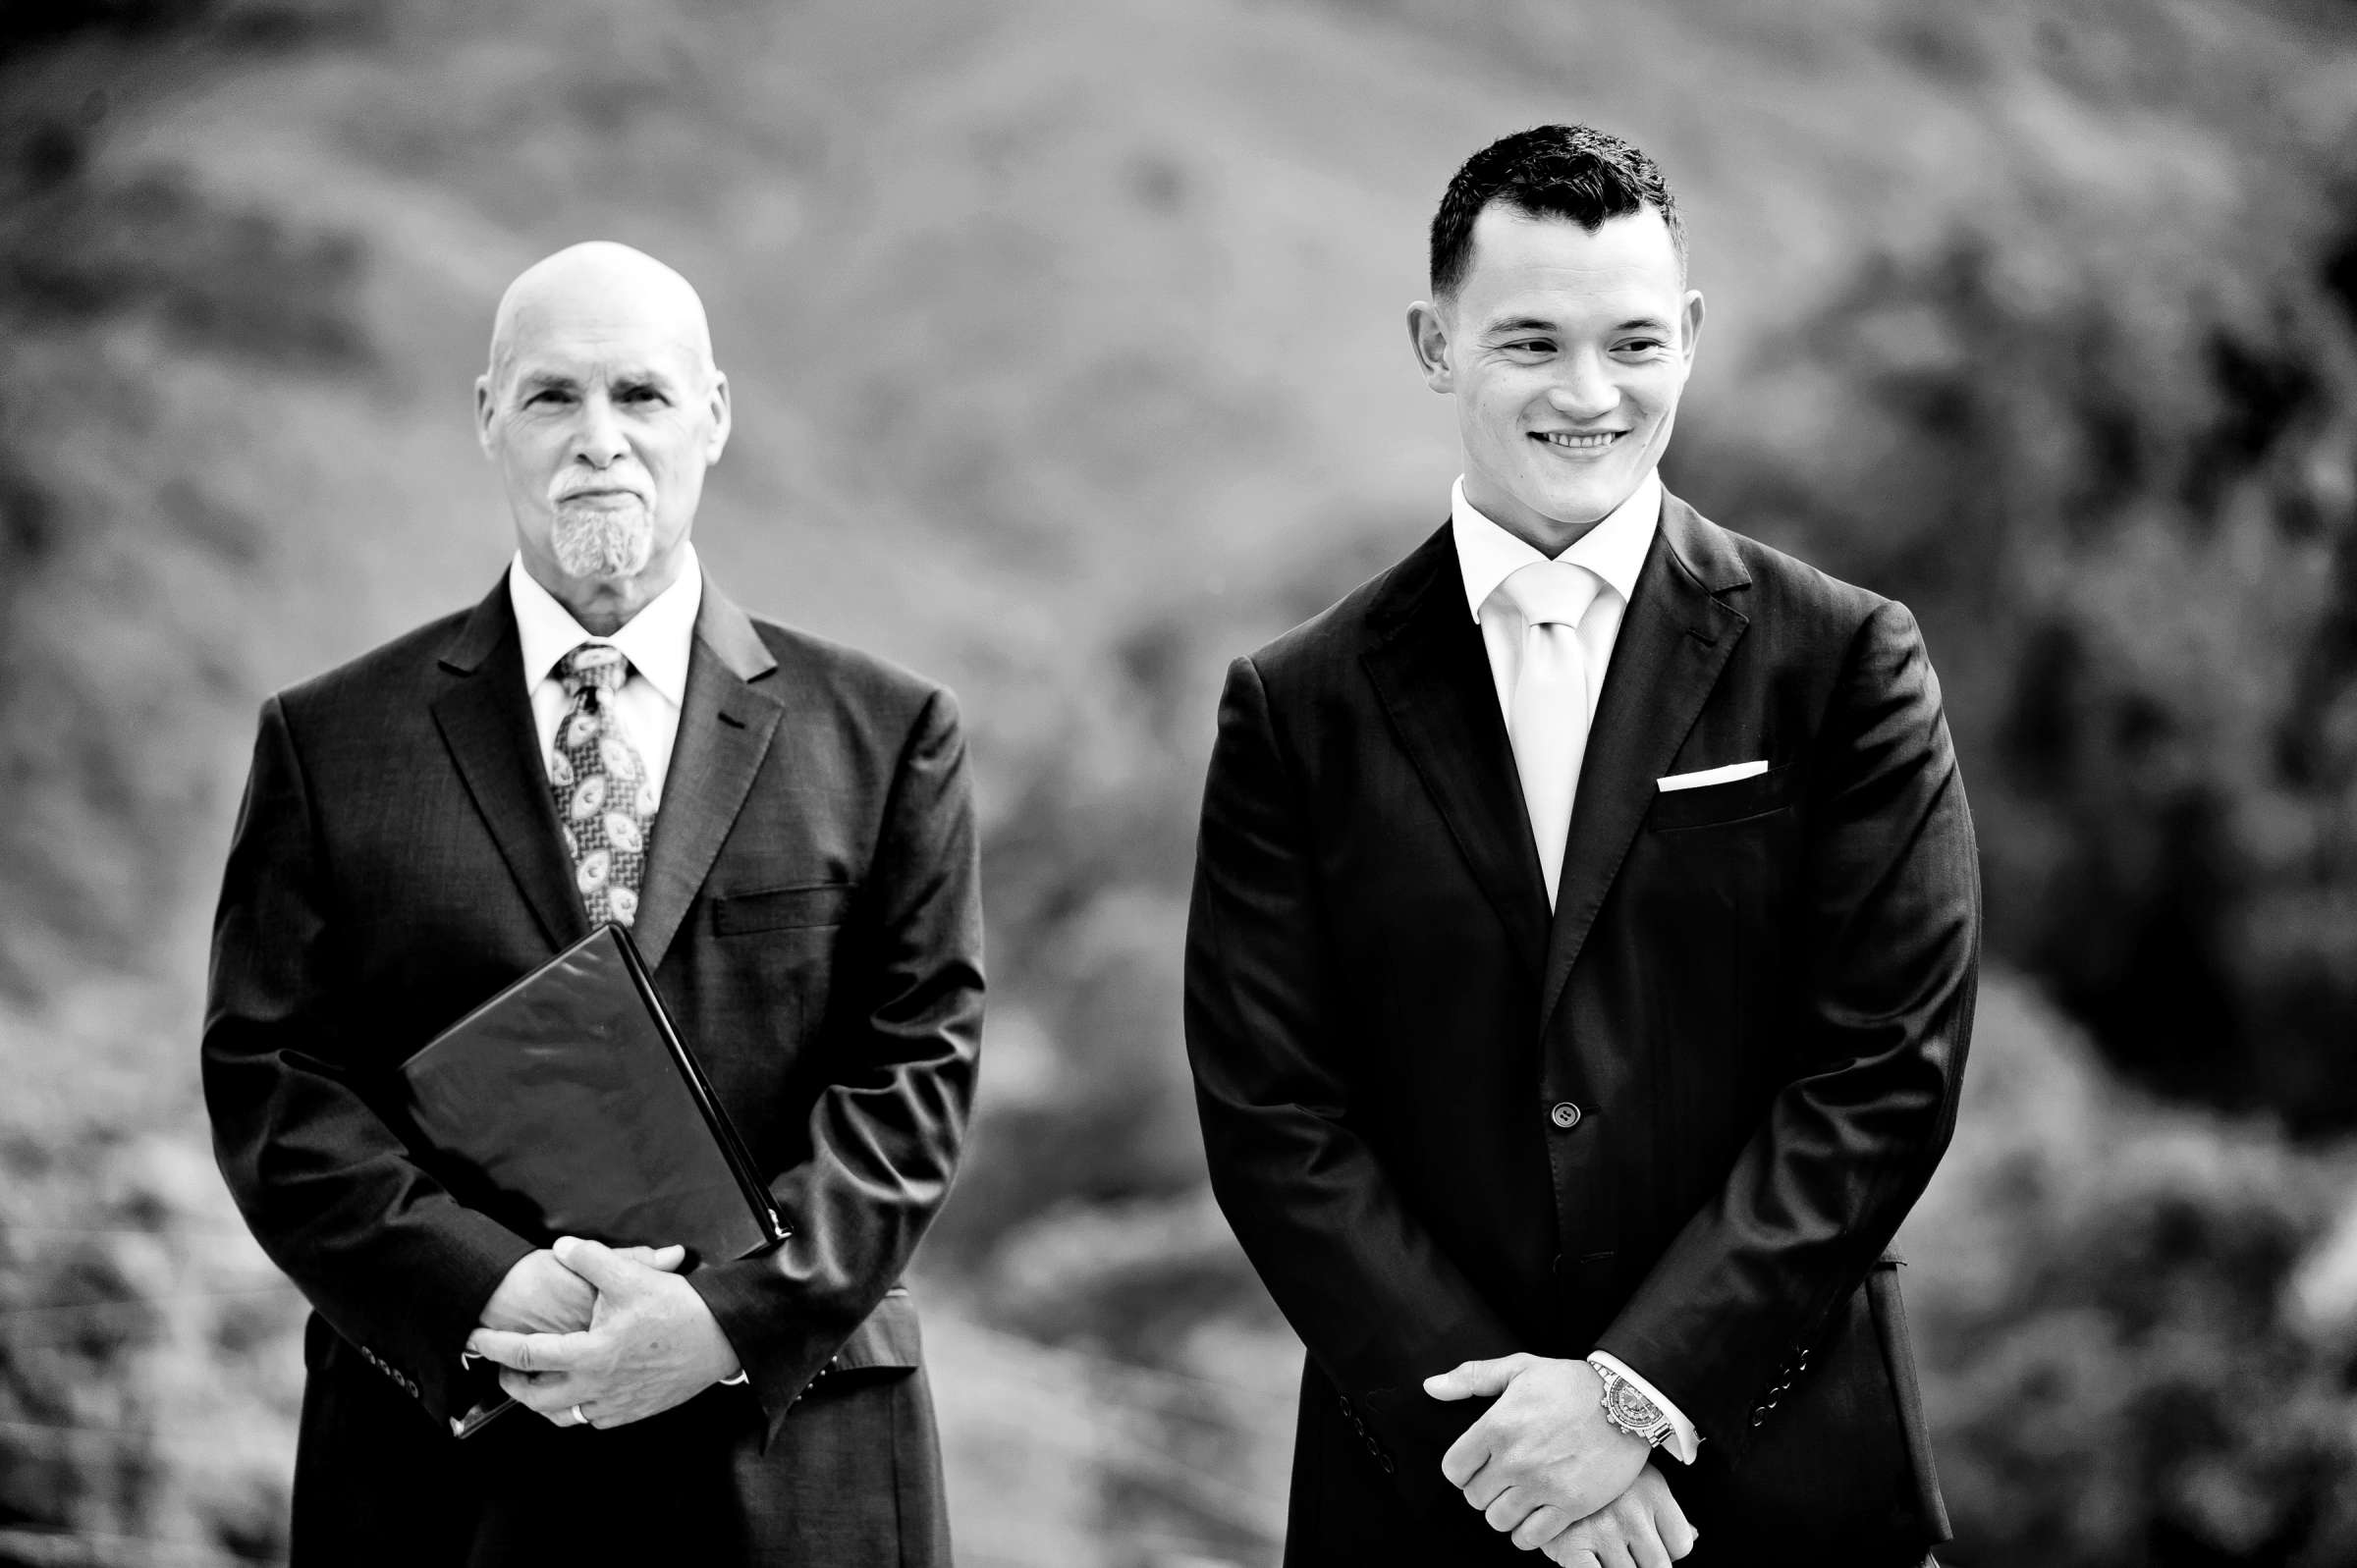 Holman Ranch Wedding, Kaley and Jason Wedding Photo #356230 by True Photography